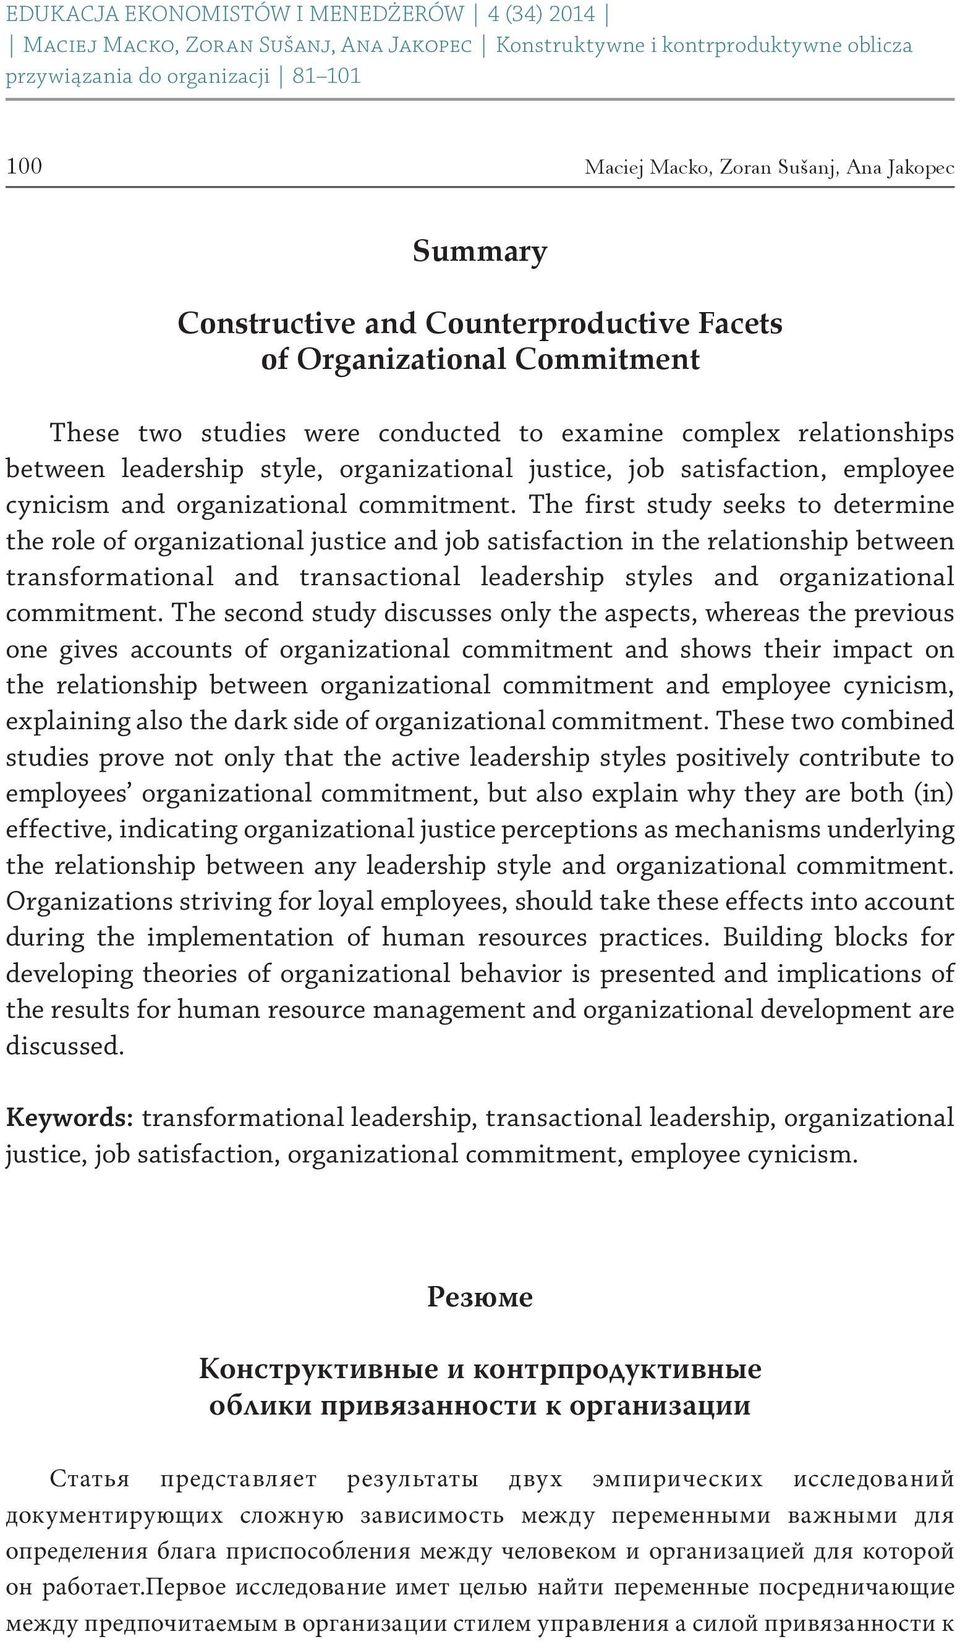 The first study seeks to determine the role of organizational justice and job satisfaction in the relationship between transformational and transactional leadership styles and organizational